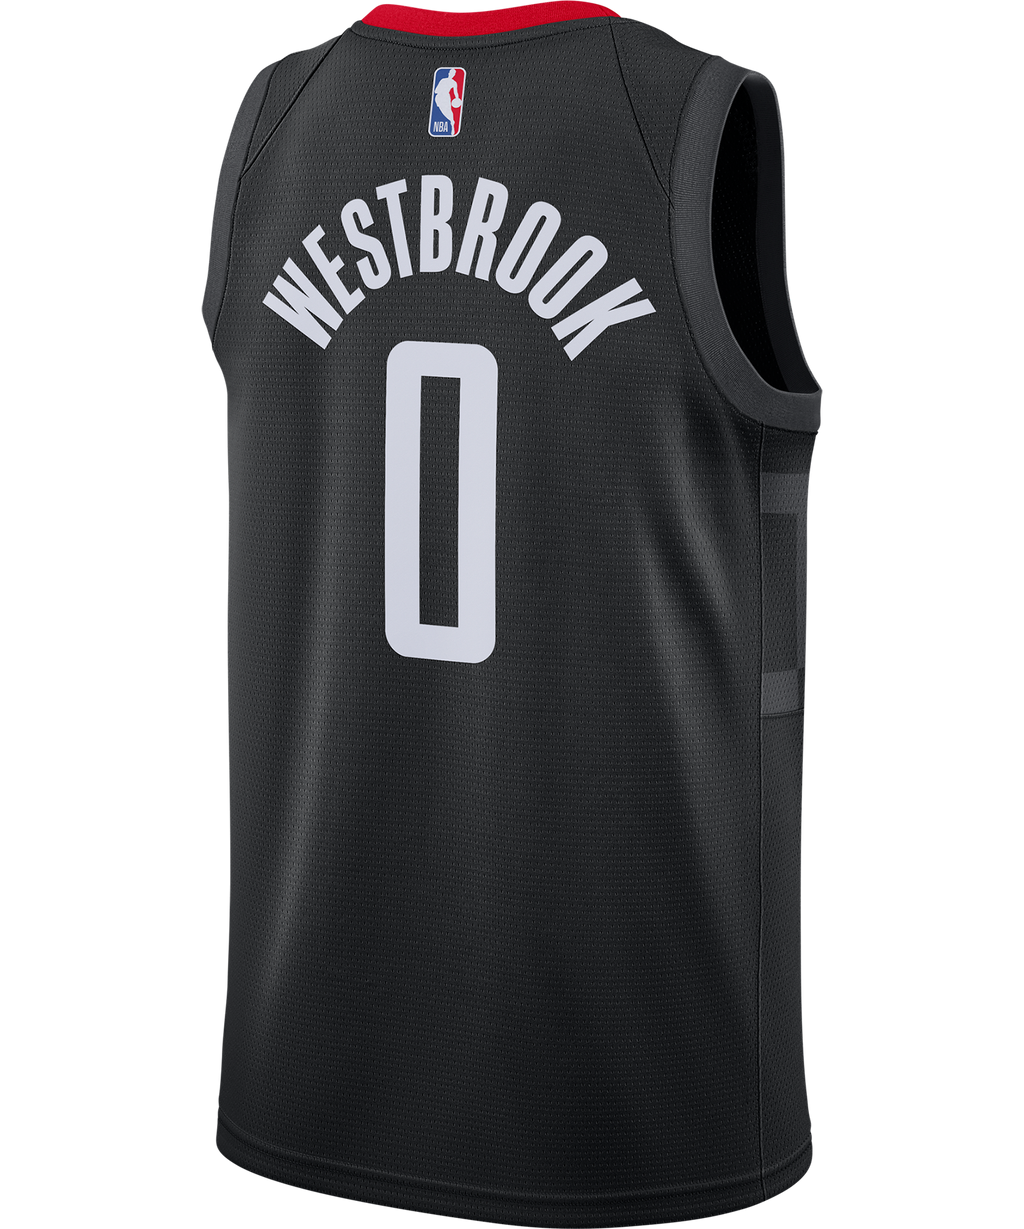 Russell Westbrook Houston Rockets Jordan Statement Edition Jersey 20/21